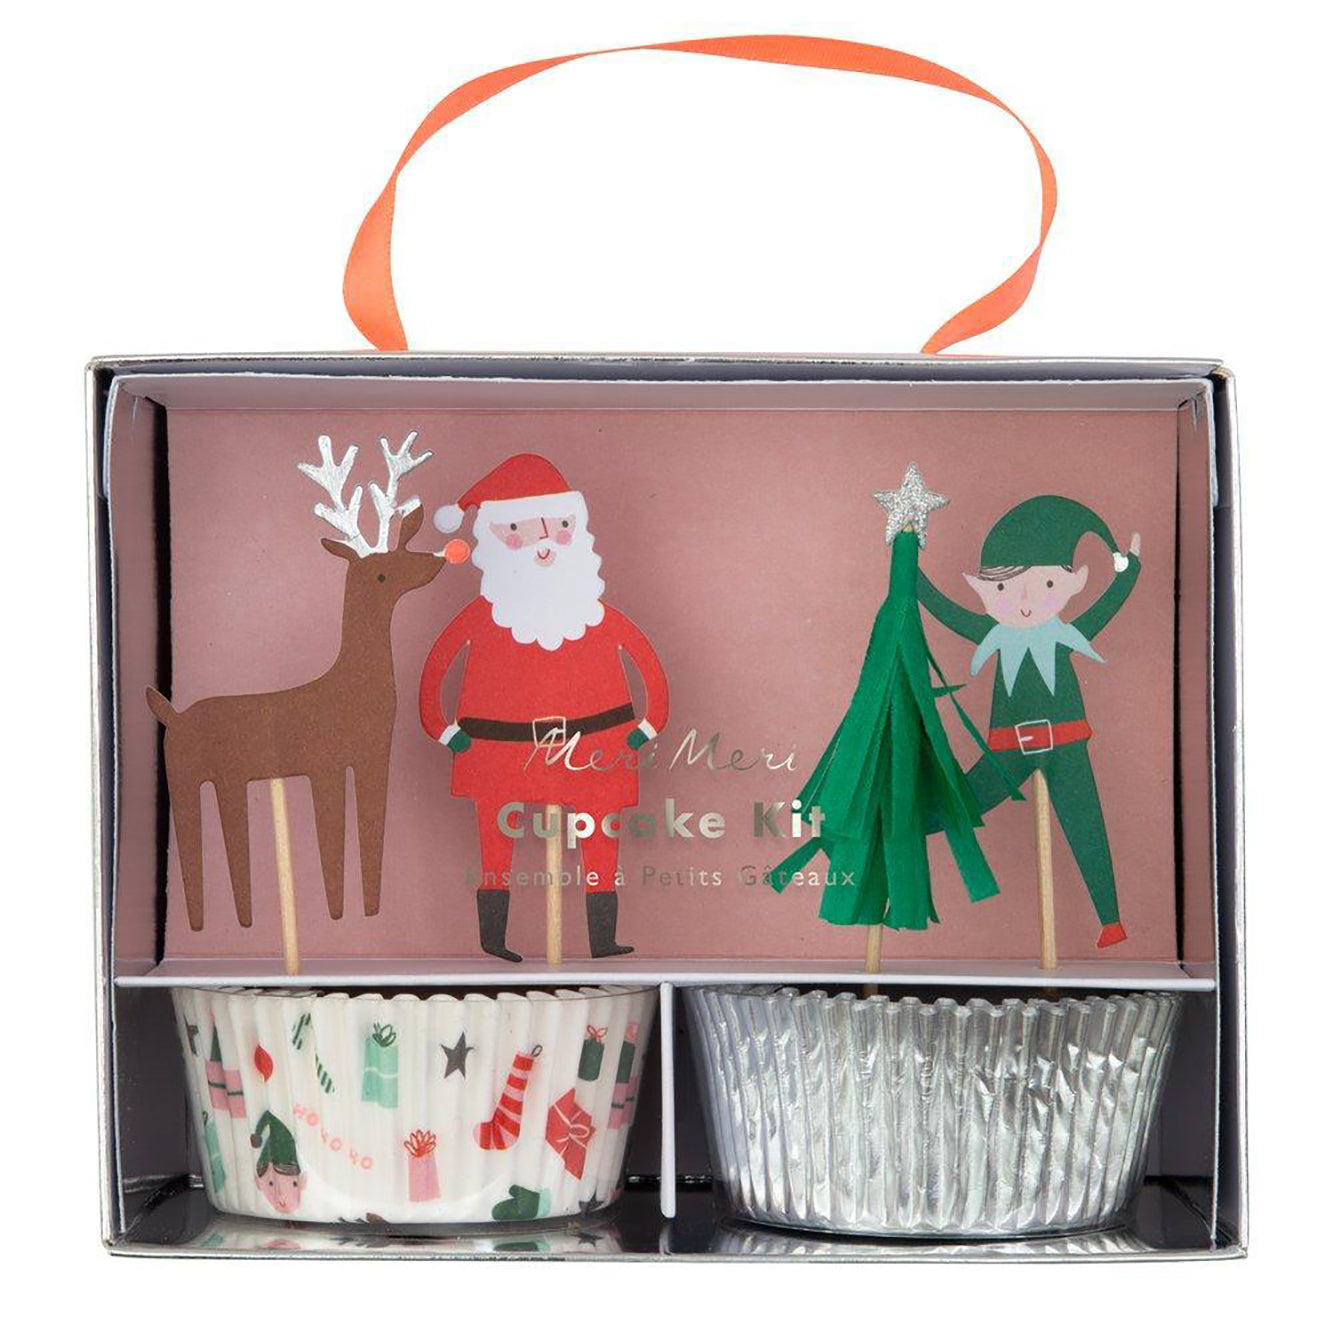 Festive Icons Cupcake Kit - The Pretty Prop Shop Parties, Auckland New Zealand